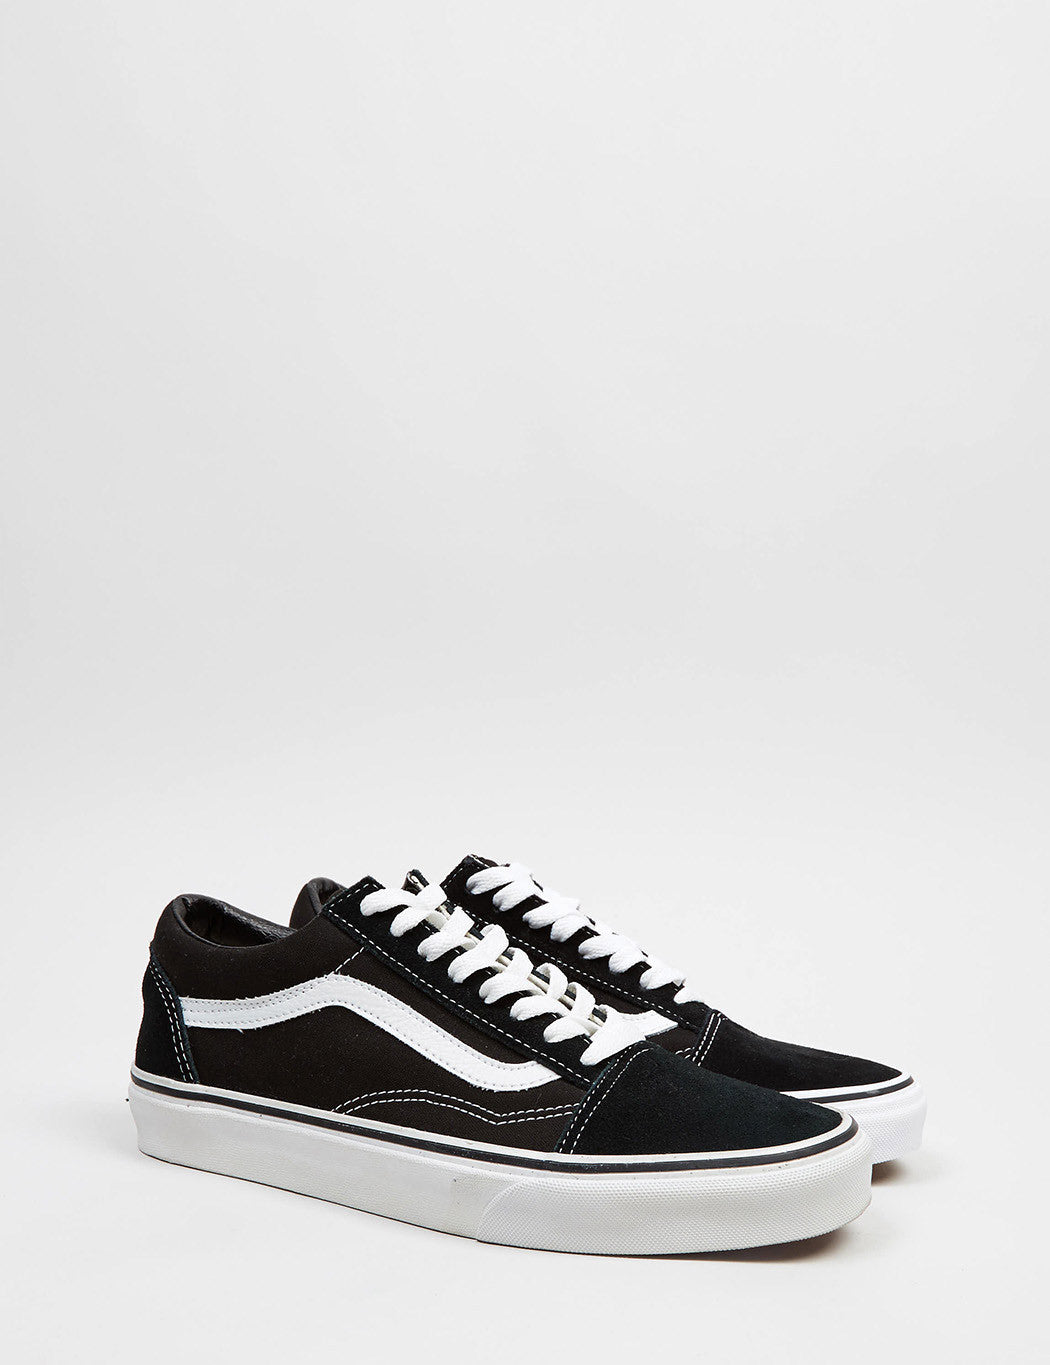 Vans Old Skool Trainers VD3HY28 - Black – URBAN EXCESS 3b3f2efa2